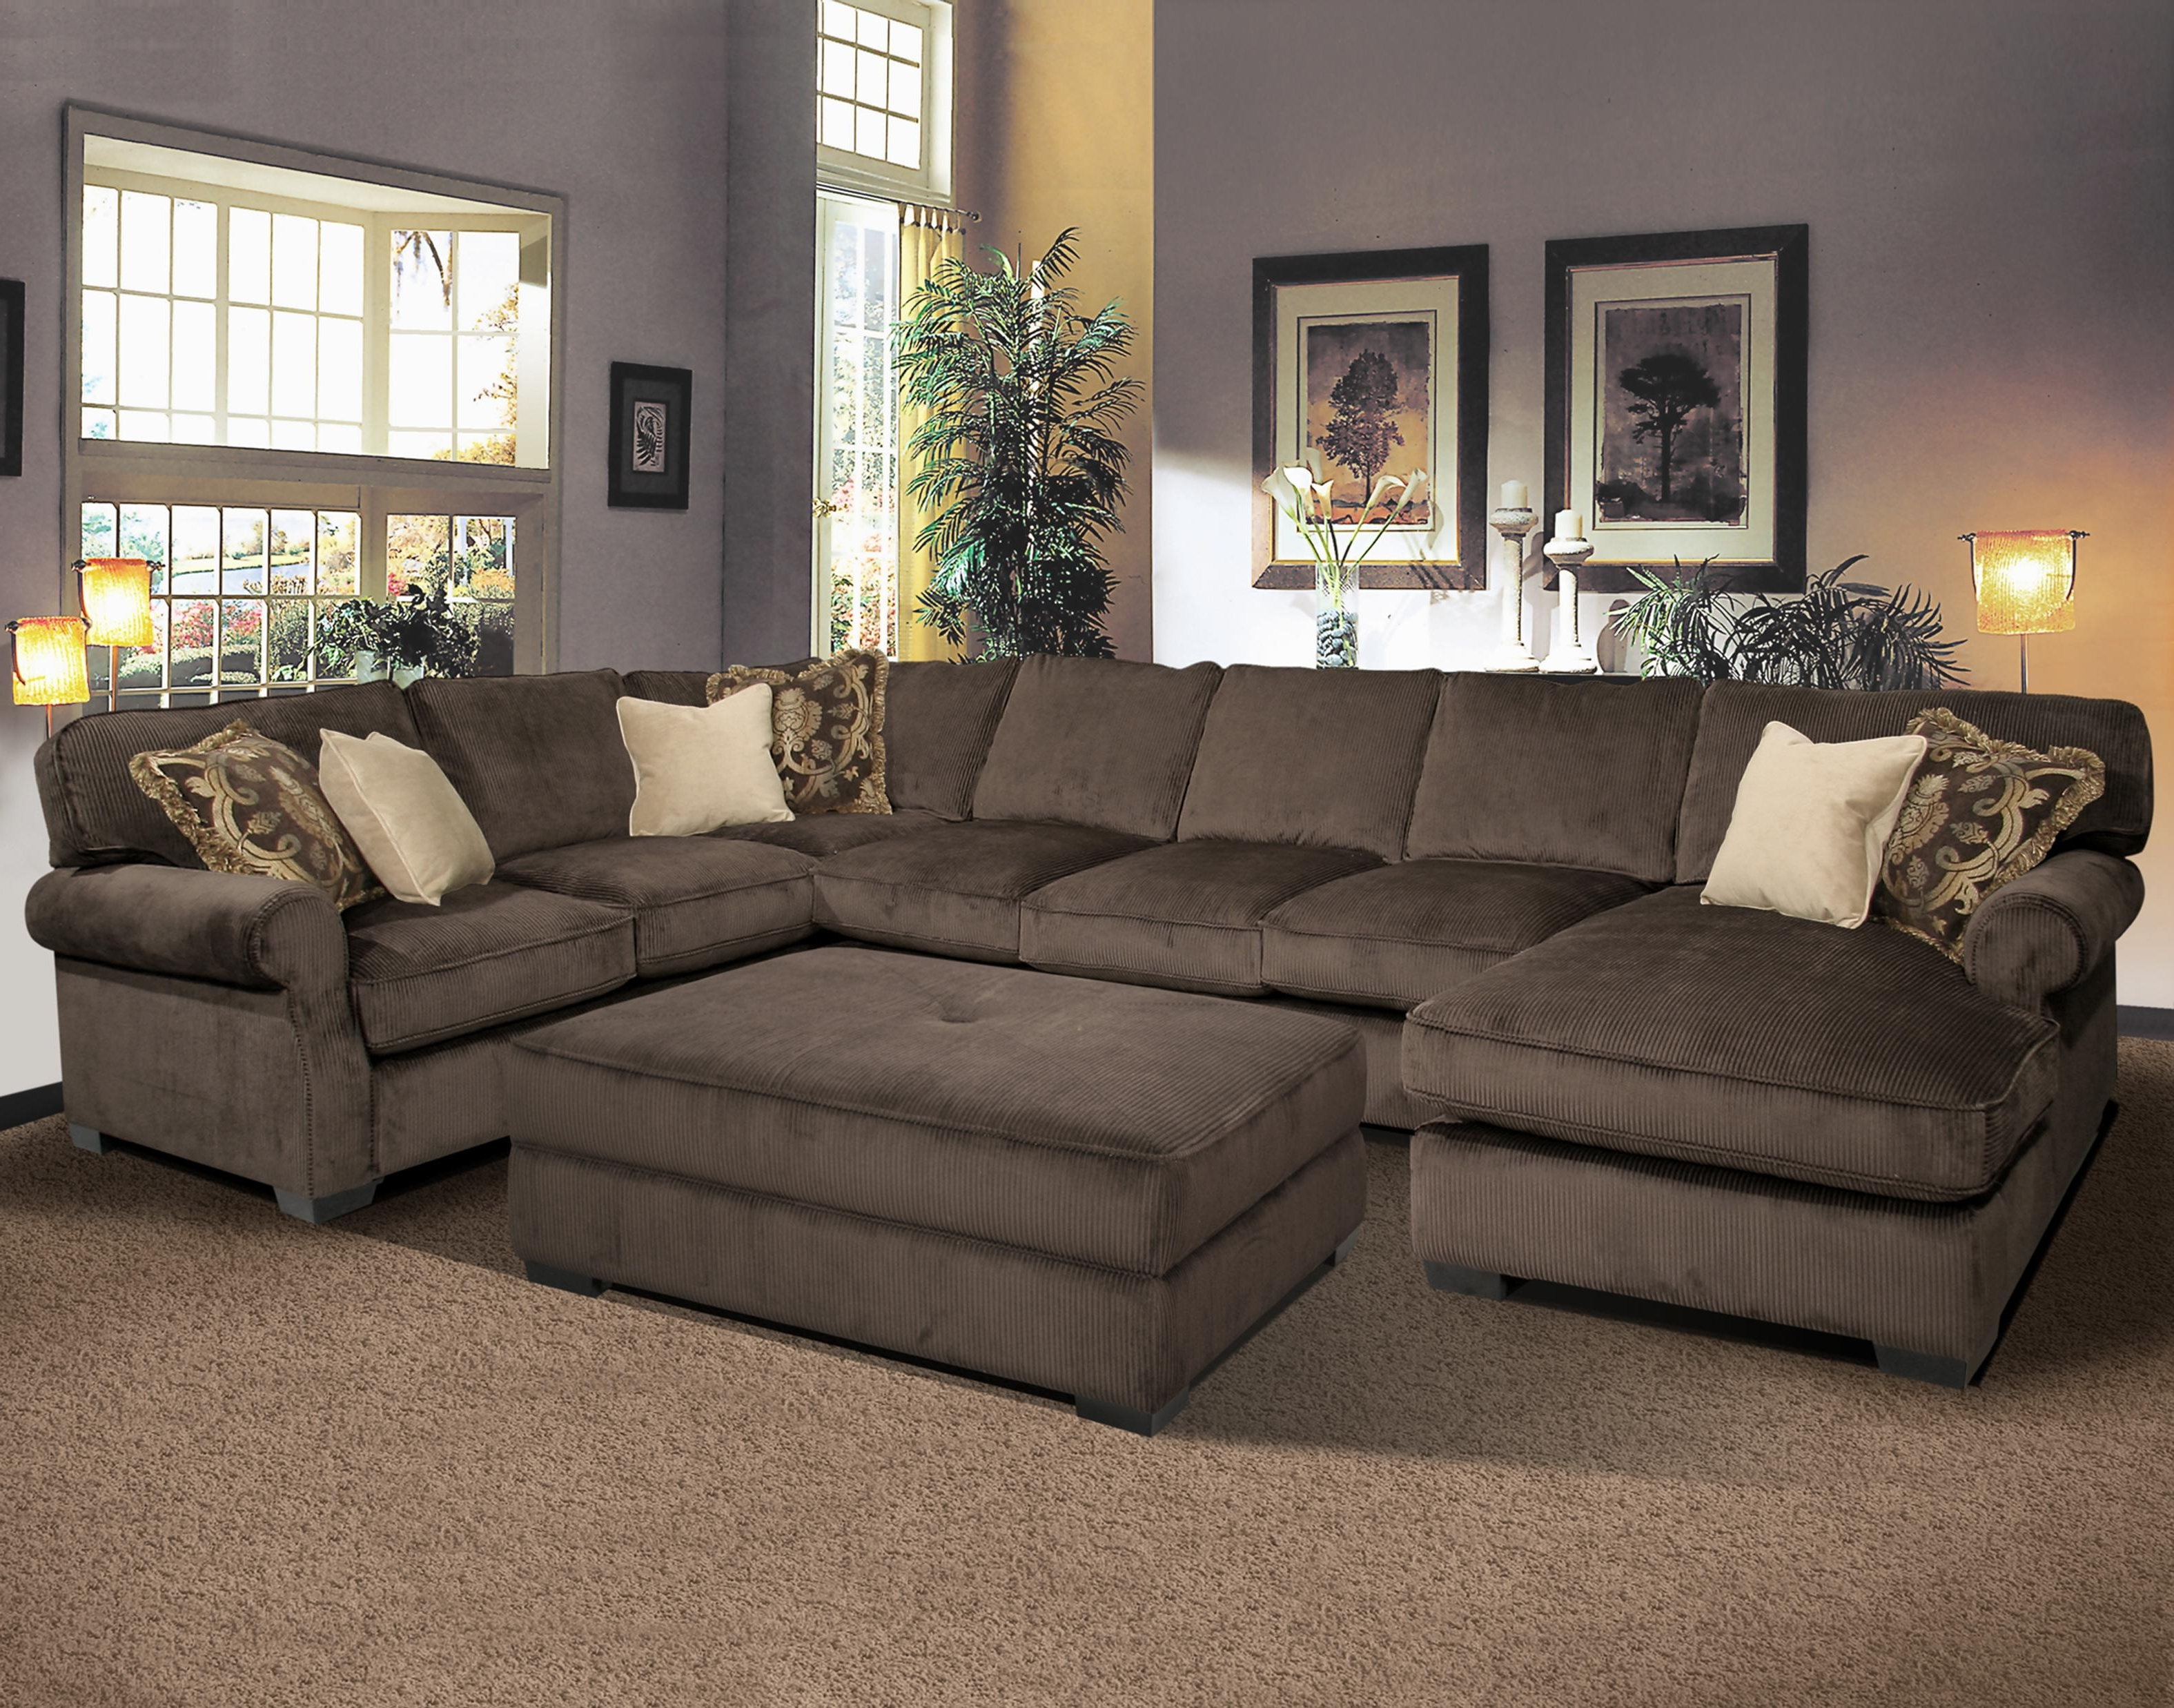 Well Liked On Sale Sectional Sofas Throughout Sofa : Sectional Slipcovers Long Couches For Sale Small L Couch (View 5 of 15)